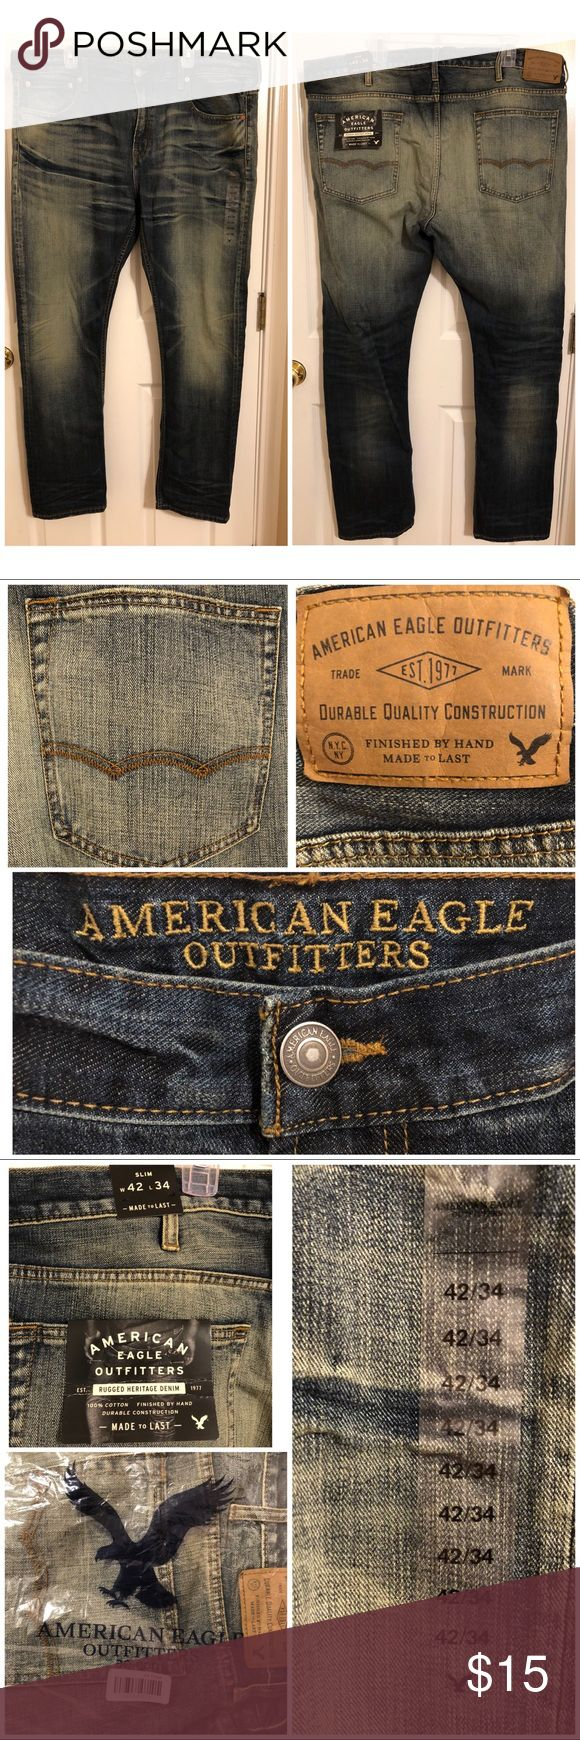 Men's American Eagle Outfitters jeans NWT Men's American Eagle Outfitters denim jeans. Size 42/34 Slim fit. In plastic packaging from online order. PERFECT condition. NO stains, snags, or tears. Offers welcome!! American Eagle Outfitters Jeans Slim